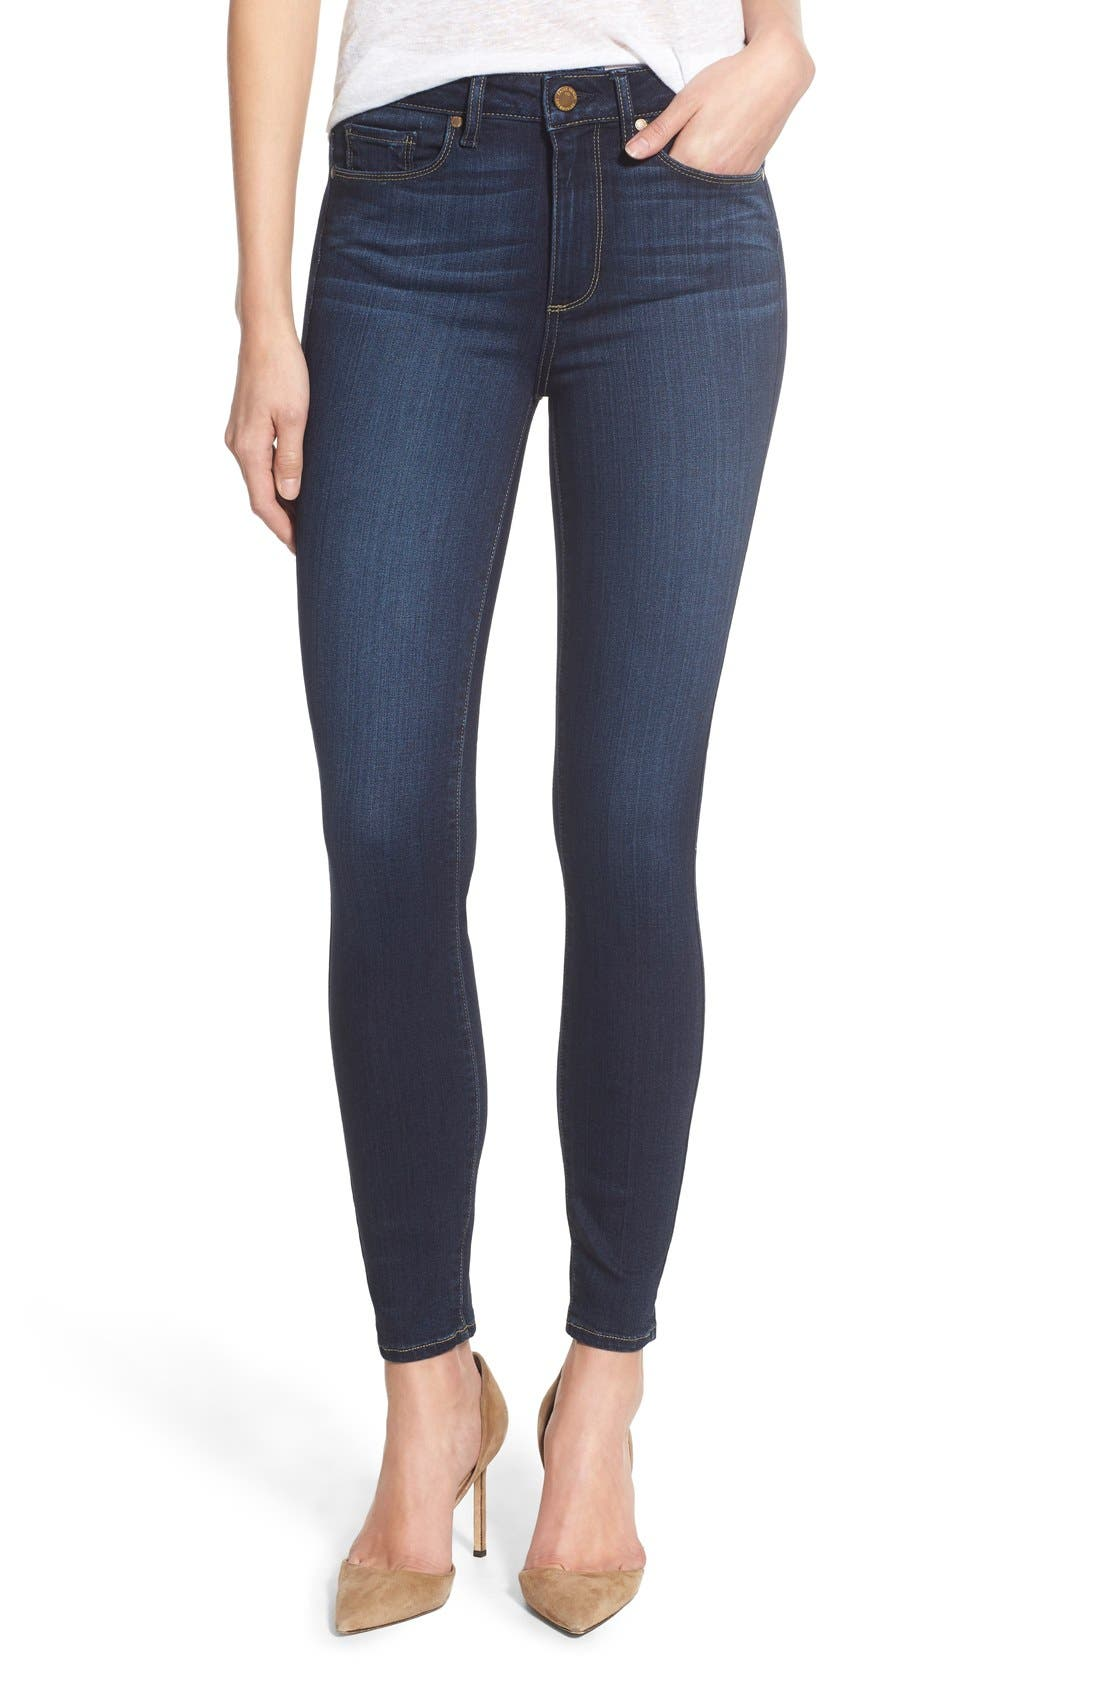 Transcend - Hoxton High Waist Ankle Ultra Skinny Jeans, Main, color, HARTMANN